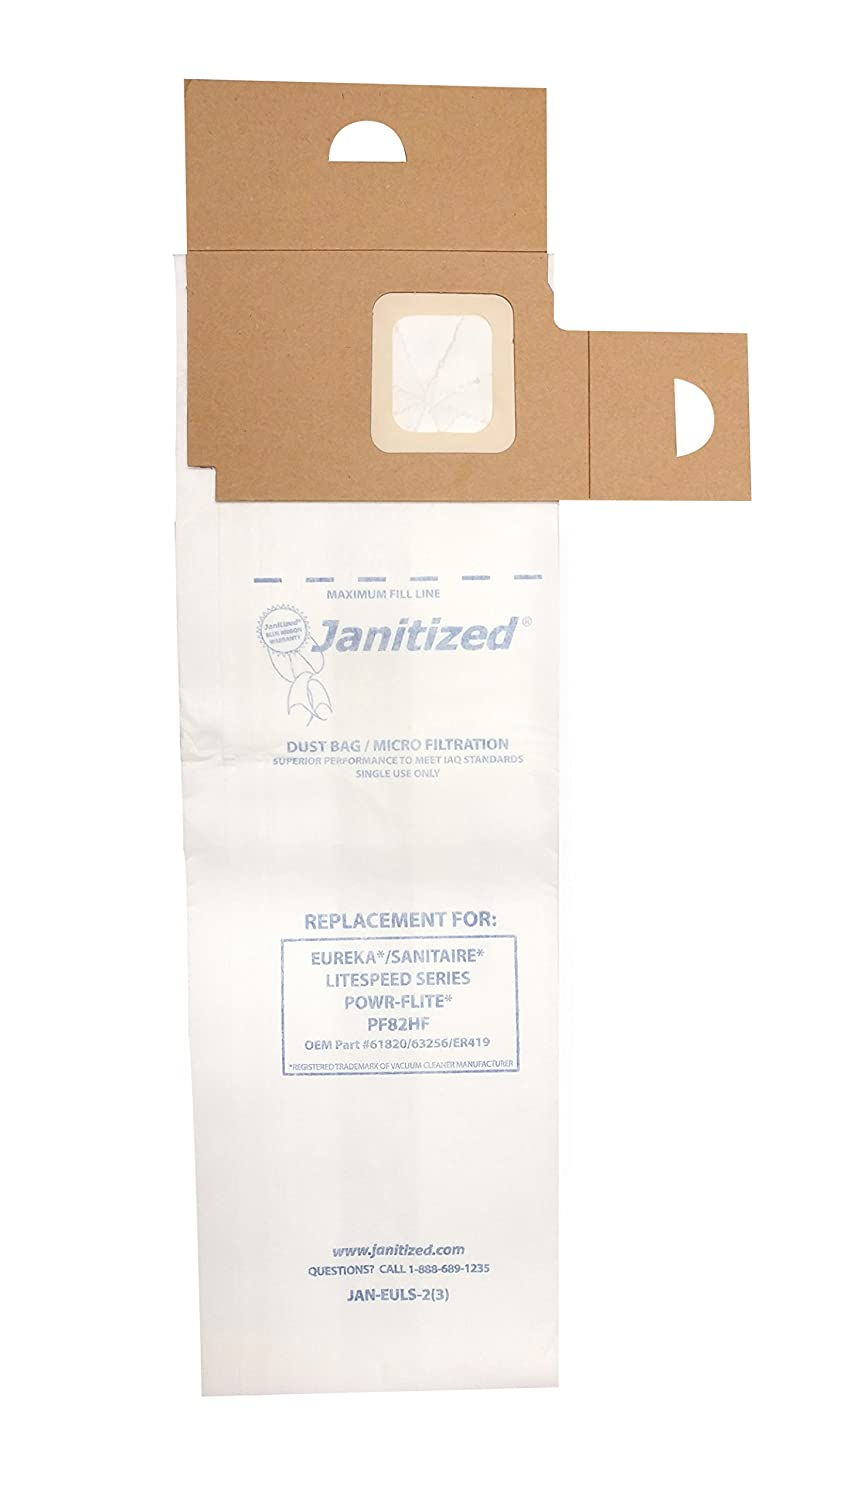 Max 52% OFF Janitized JAN-EULS-2 3 Super sale Paper Vac Commercial Replacement Premium